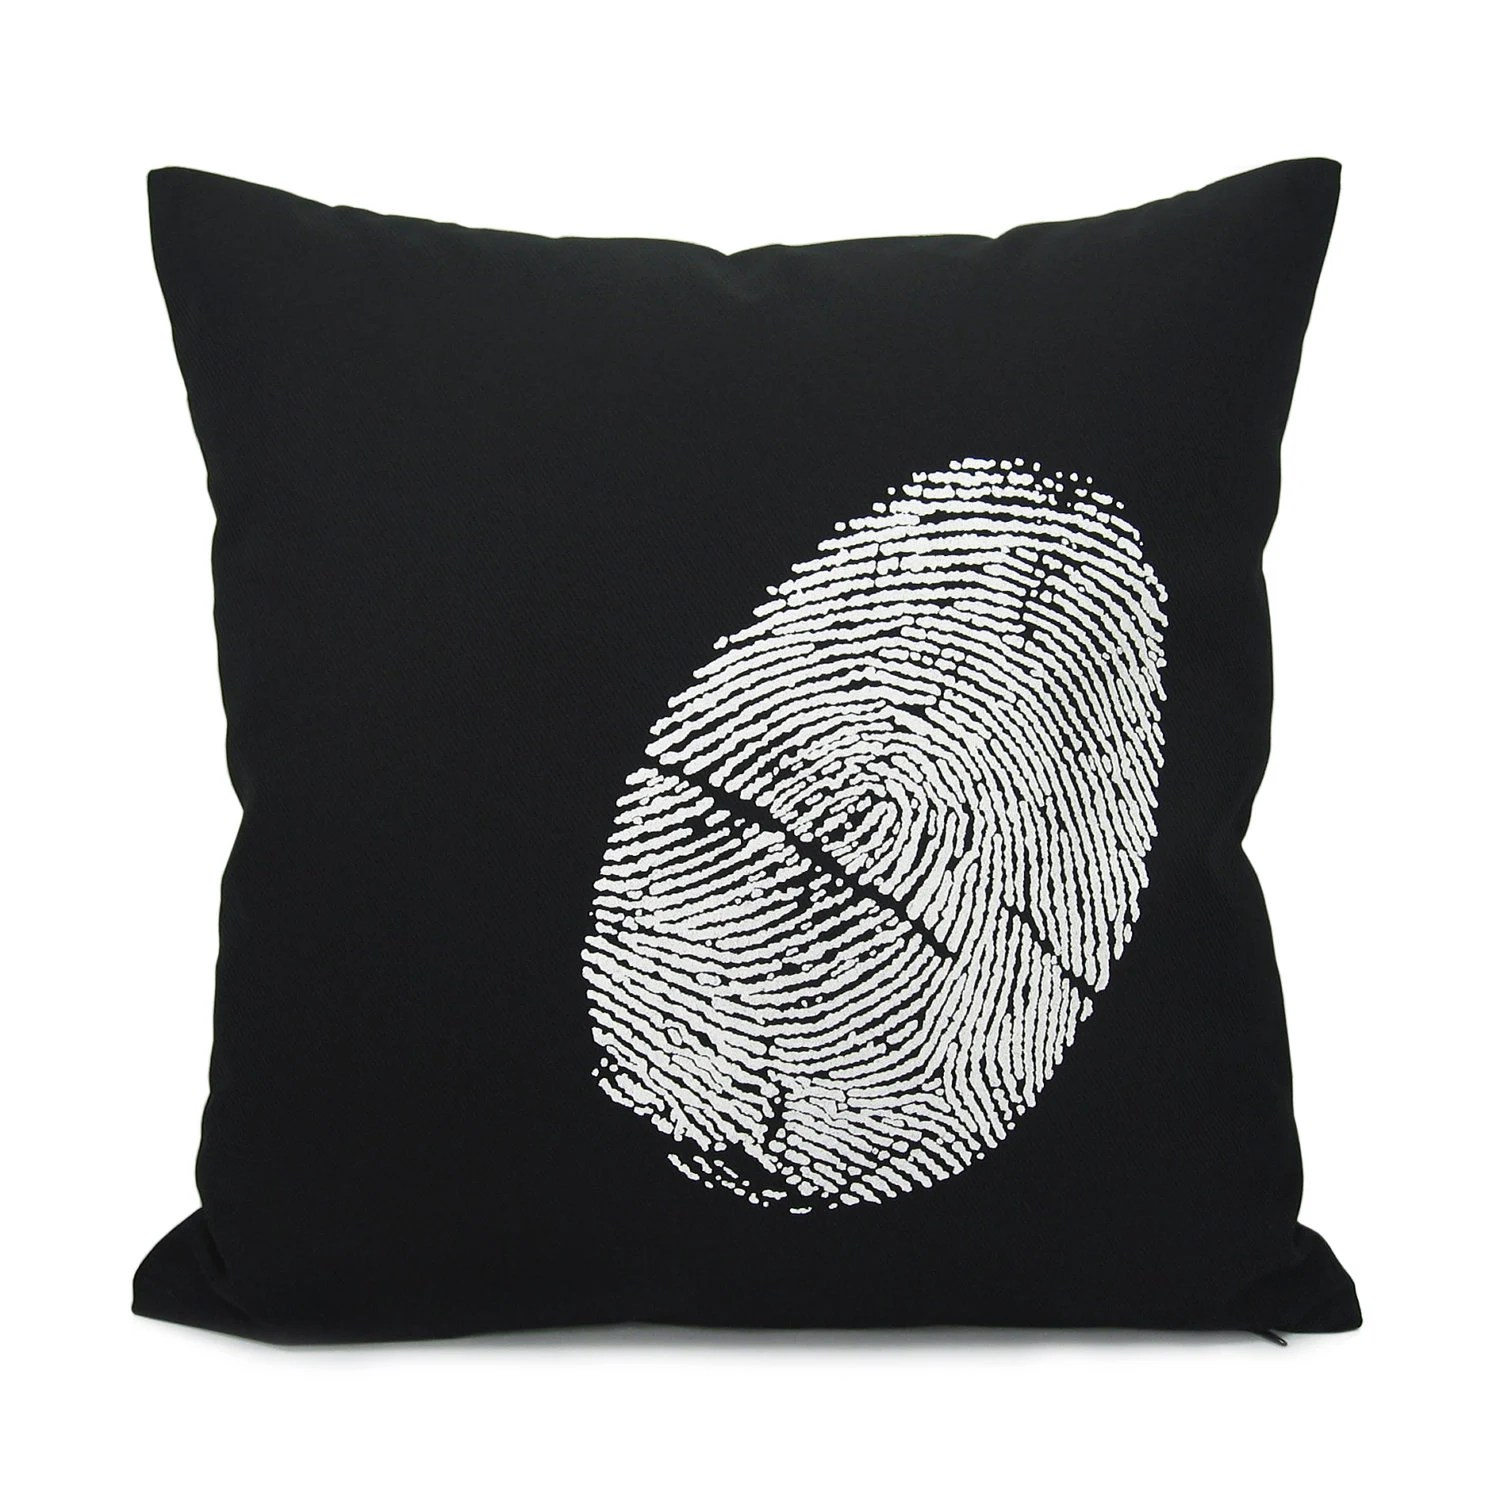 16x16 black throw pillow cover with white fingerprint - Thumbprint - Industrial home decor - Black and white decorative pillow case - ClassicByNature